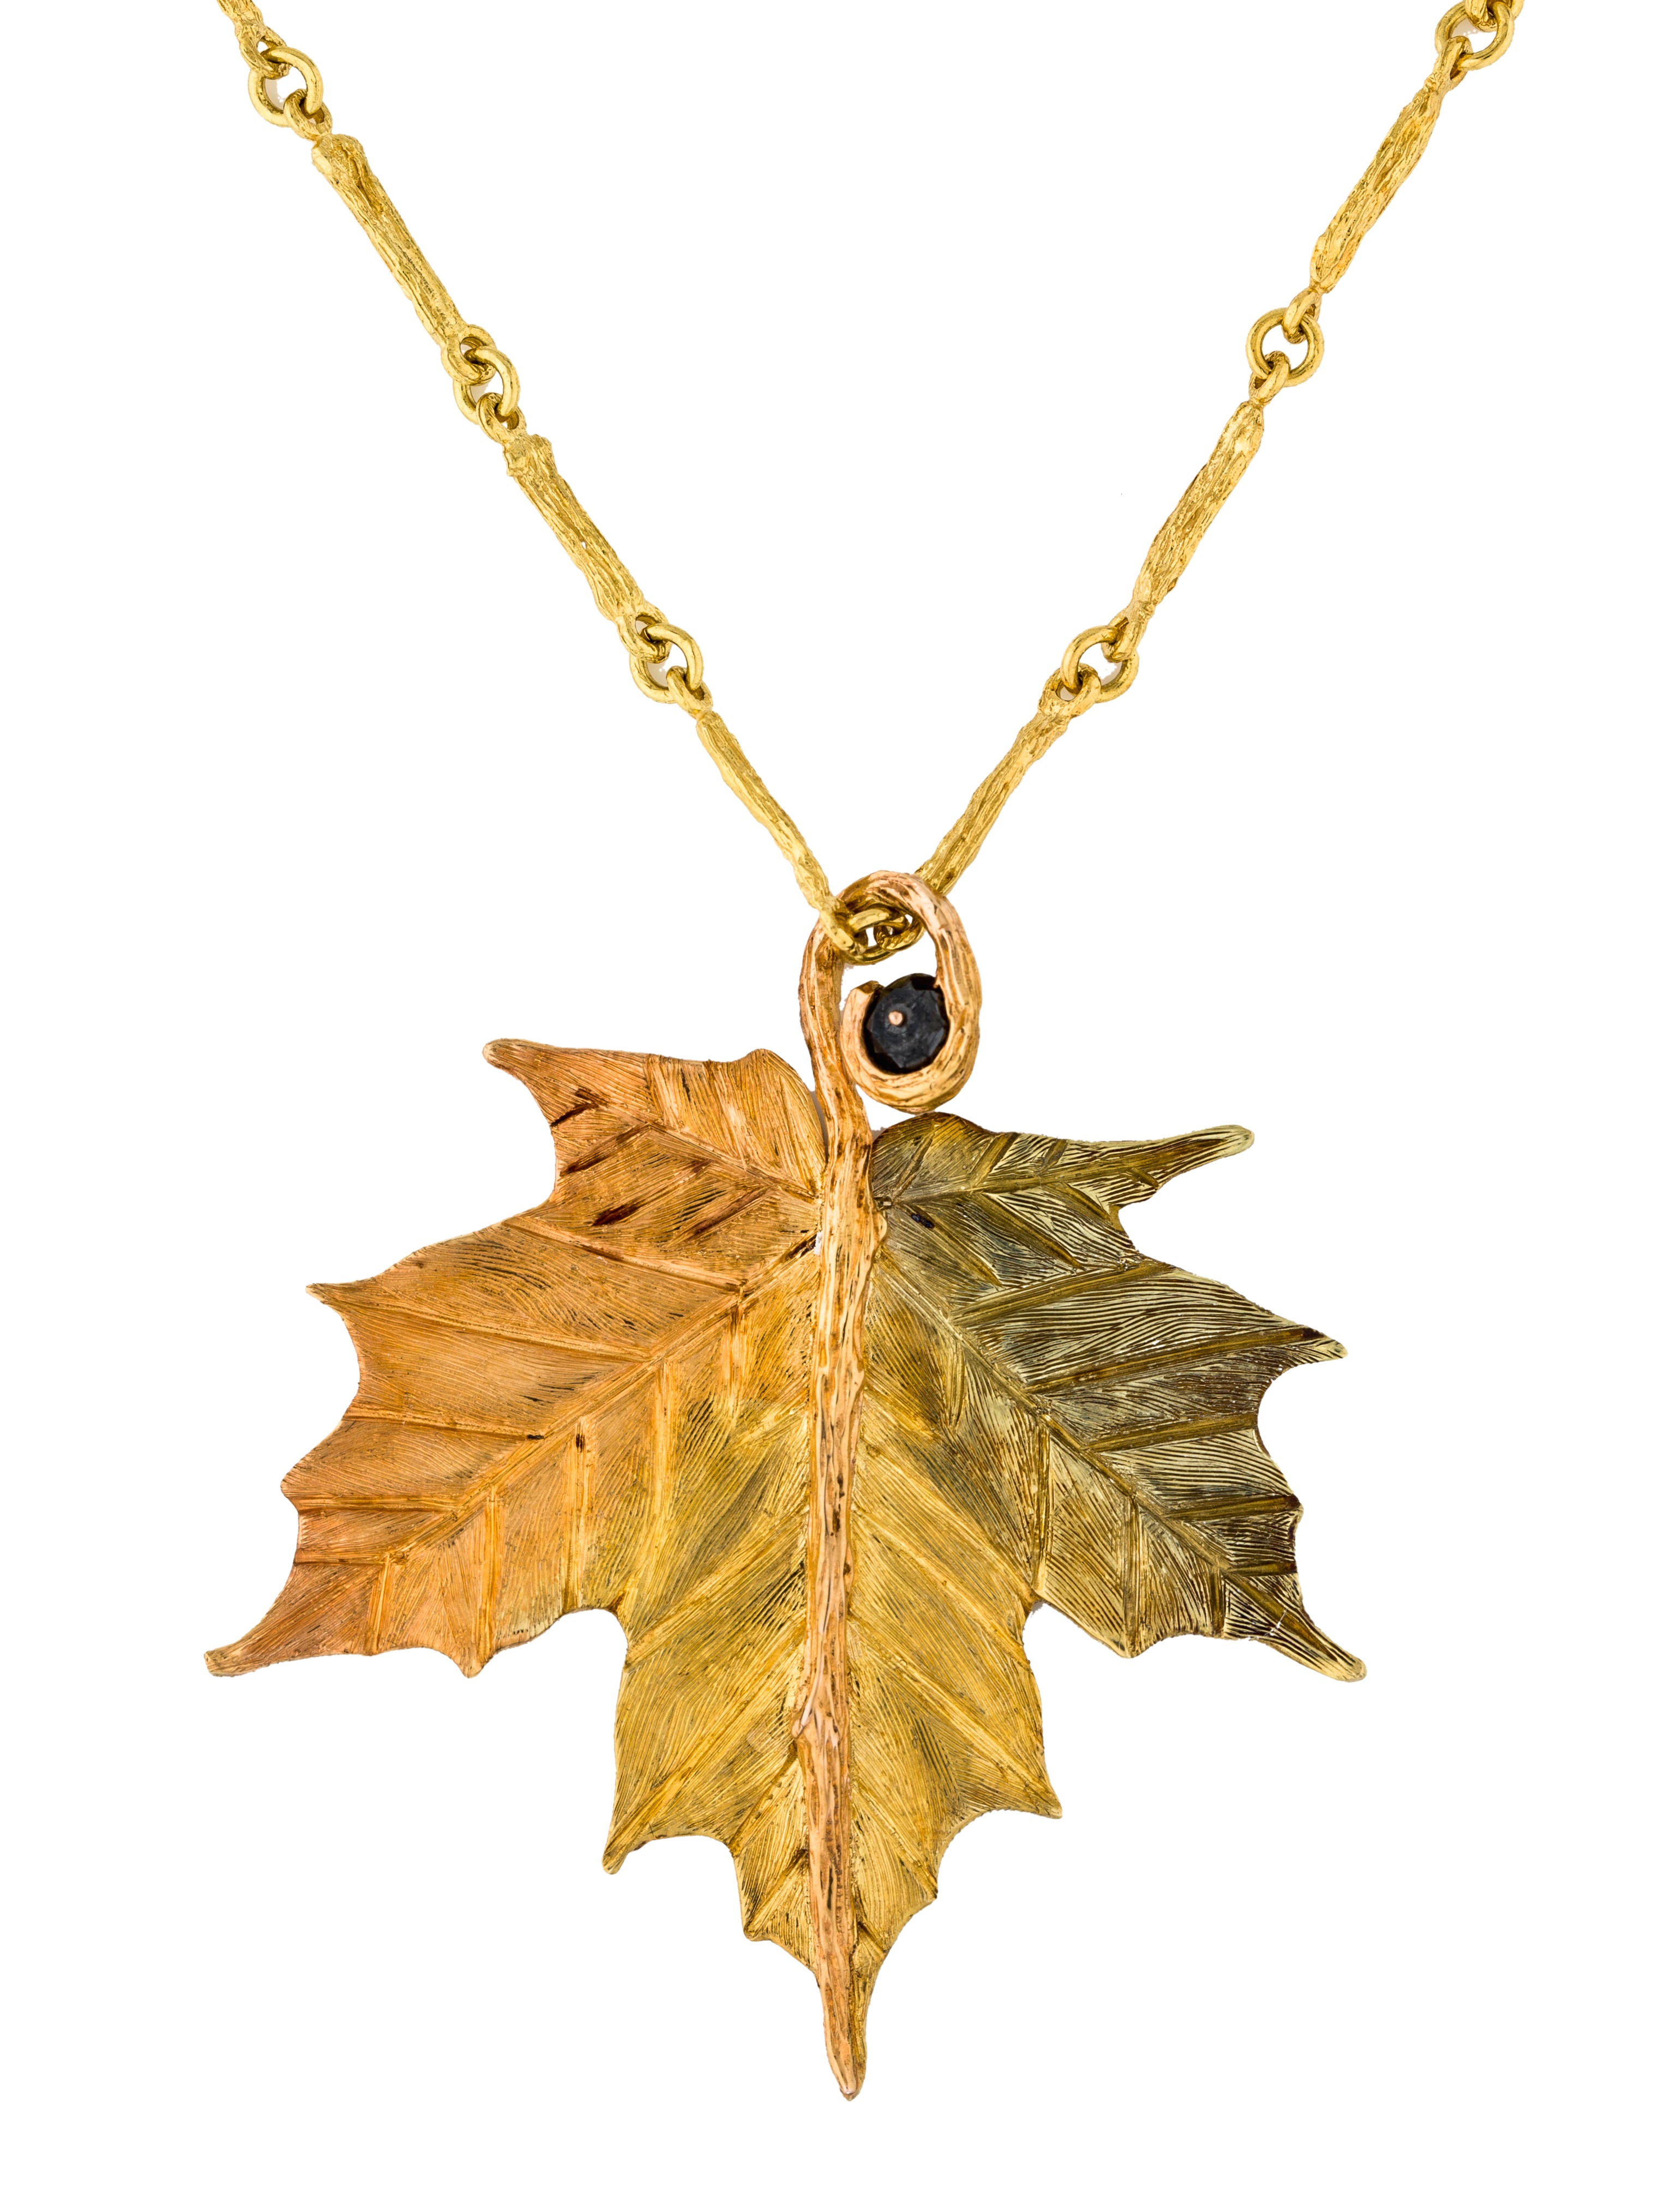 K brunini 18k diamond maple leaf pendant necklace necklaces 18k diamond maple leaf pendant necklace aloadofball Image collections